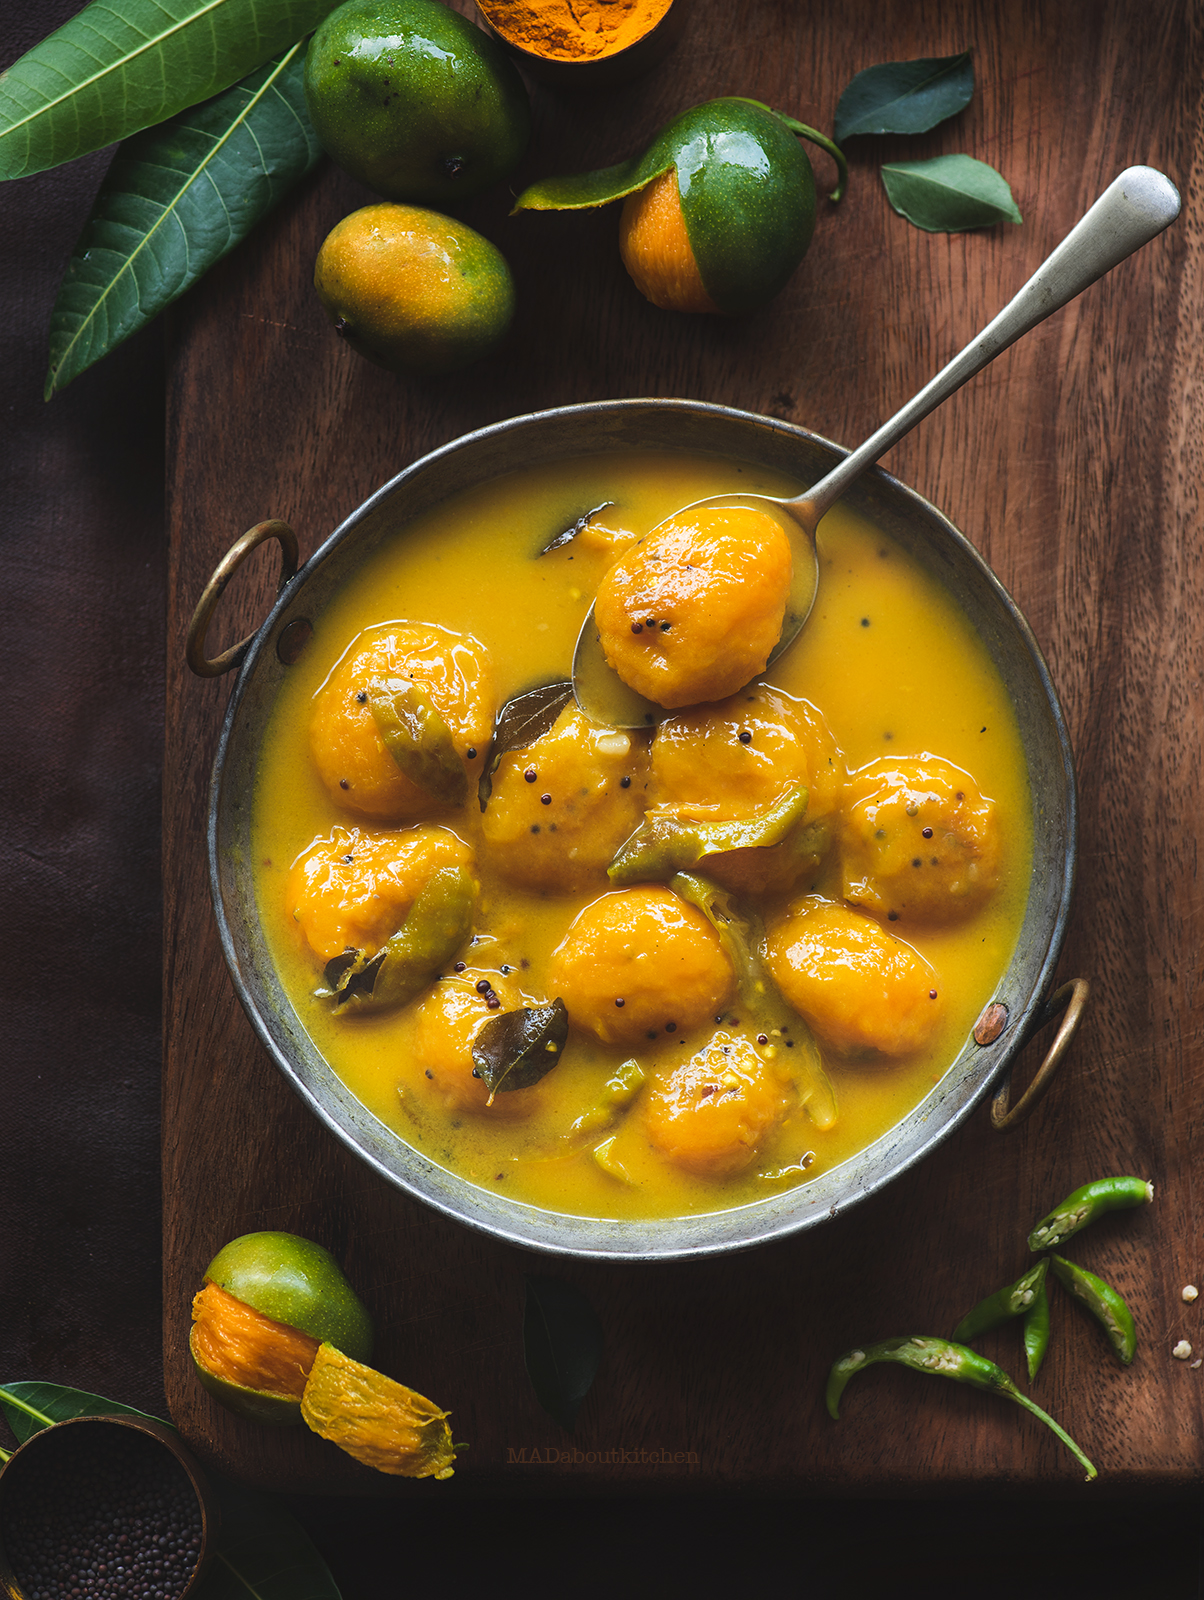 Maavina Hannu Gojju is the mango curry made using the mini mangoes called 'Sakkare guthi' . Maavina Hannu Gojju is a spicy, tangy and sweet mango curry.